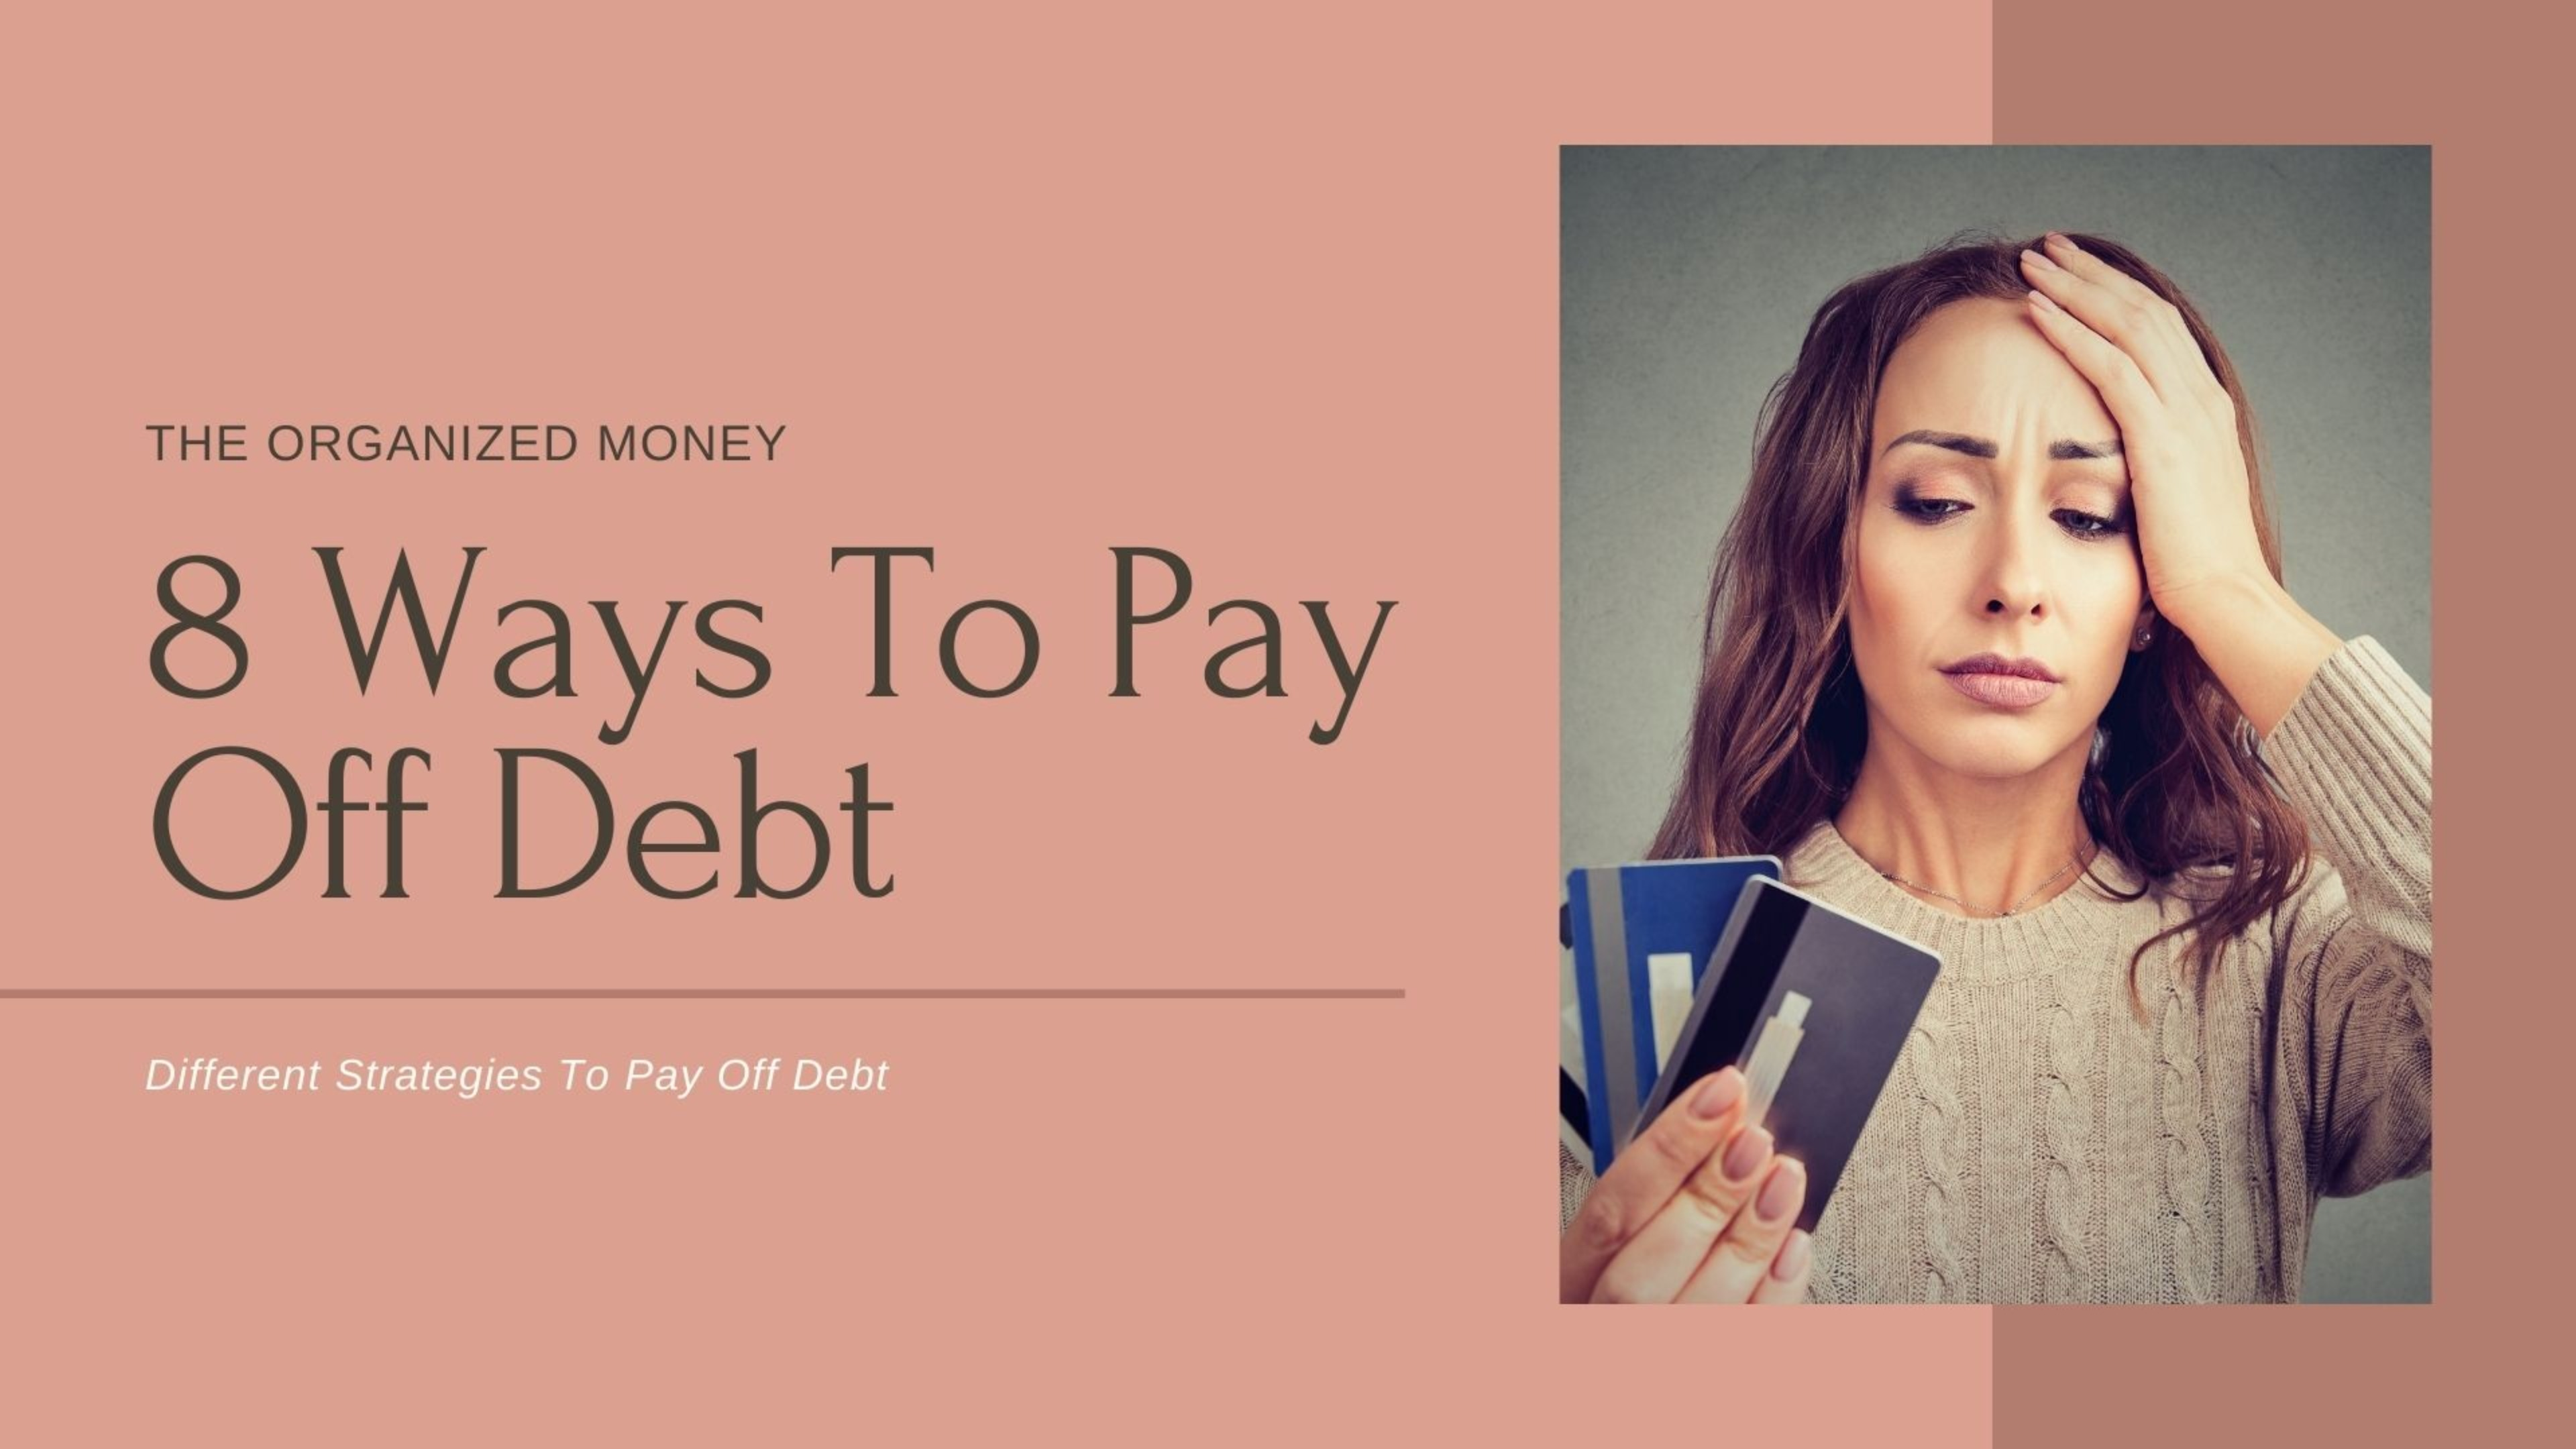 8 Ways To Pay Off Debt